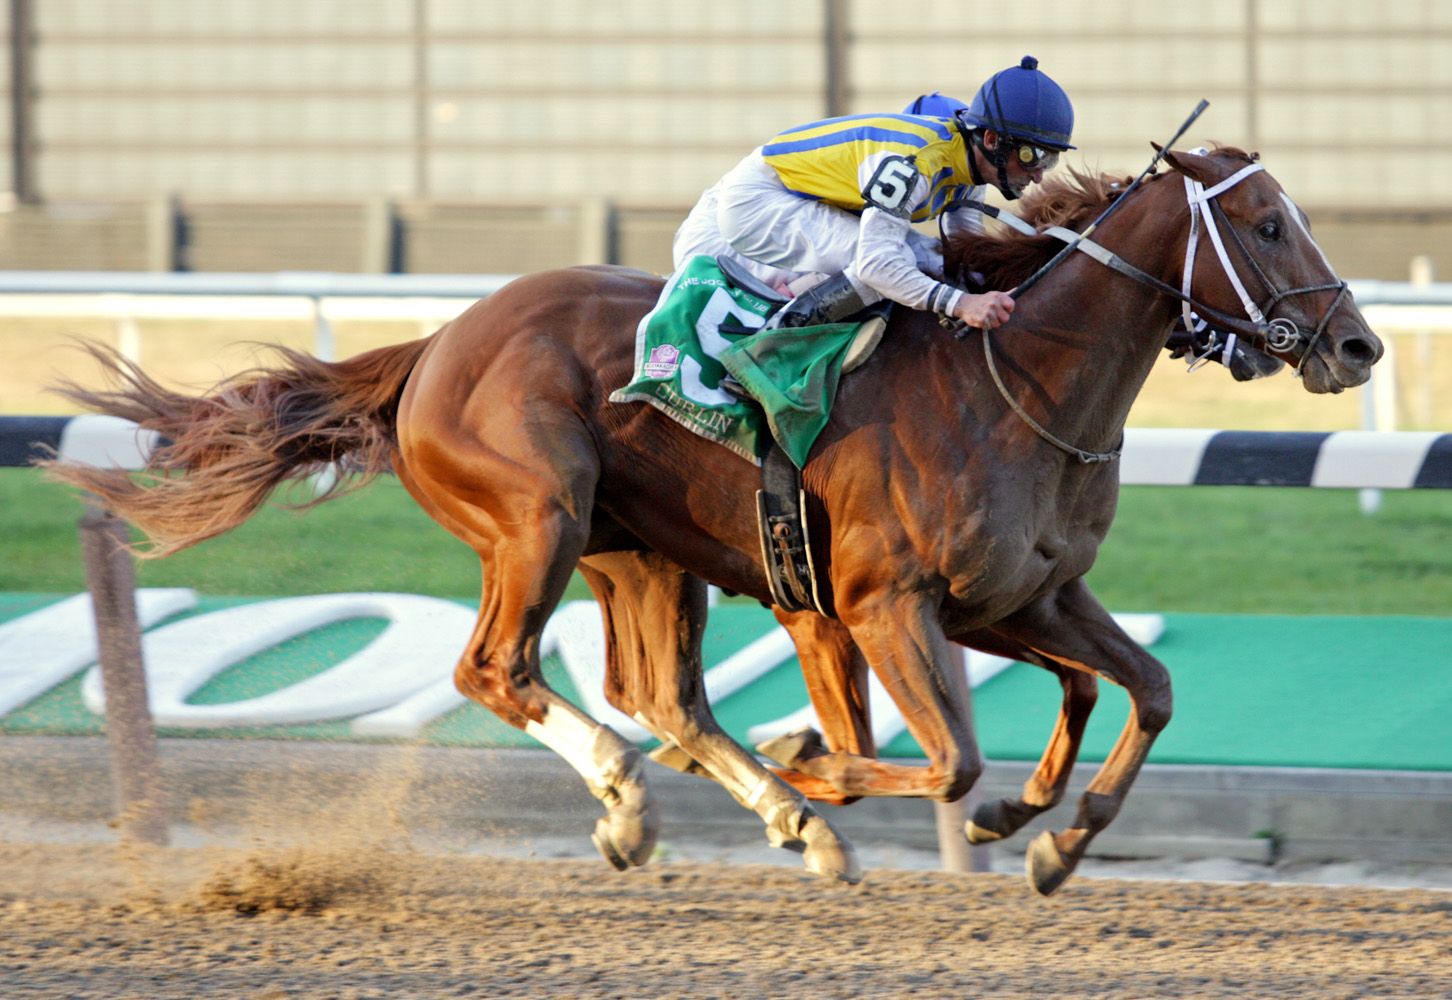 Curlin (Robby Albarado up) racing to victory in the 2007 Jockey Club Gold Cup at Belmont Park (Barbara D. Livingston/Museum Collection)